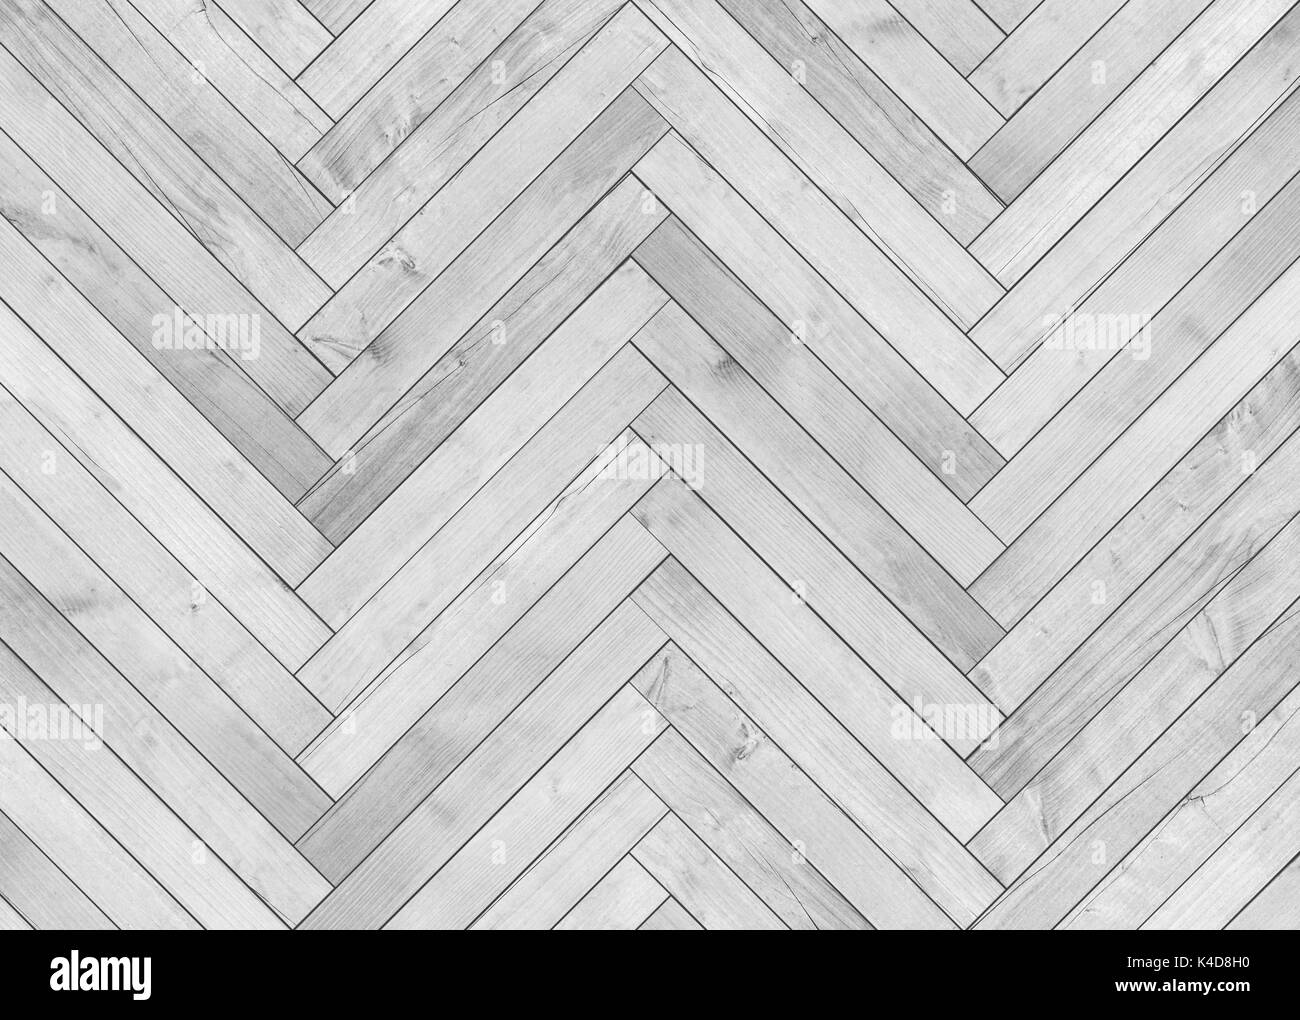 Wood Floor Black And White Stock Photos Images Alamy